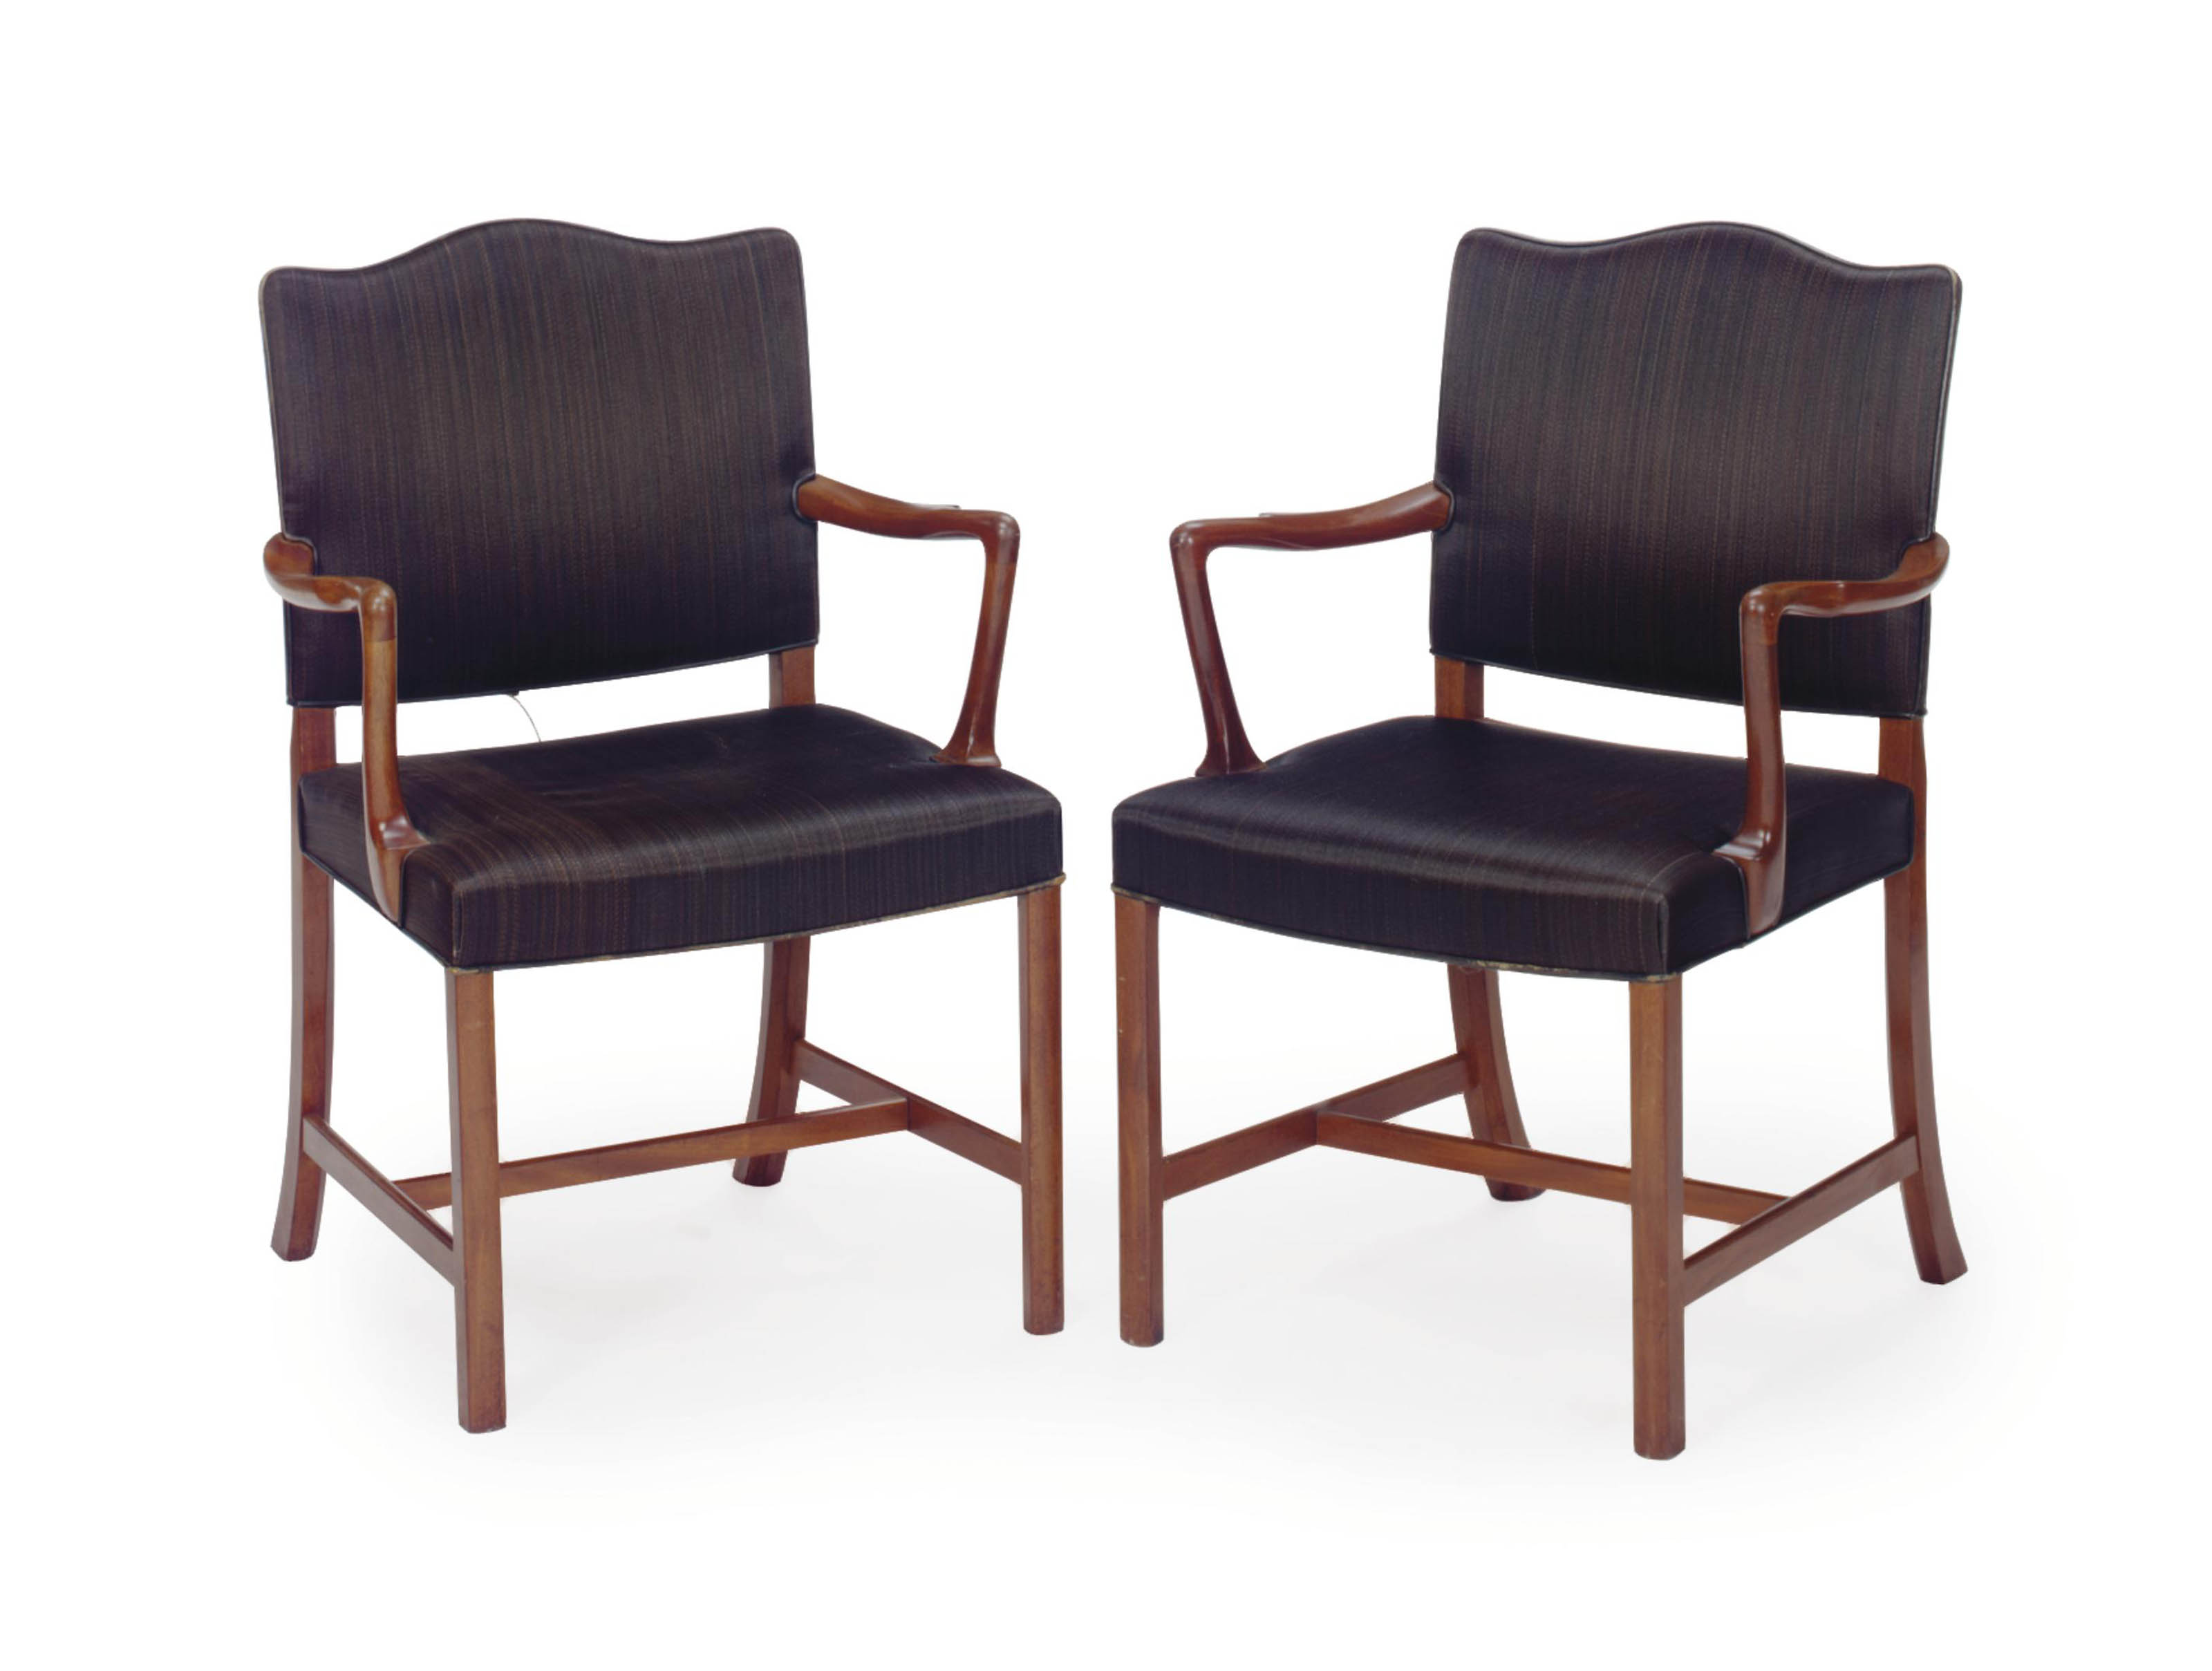 A PAIR OF DANISH MAHOGANY AND HORSEHAIR-COVERED ARMCHAIRS,